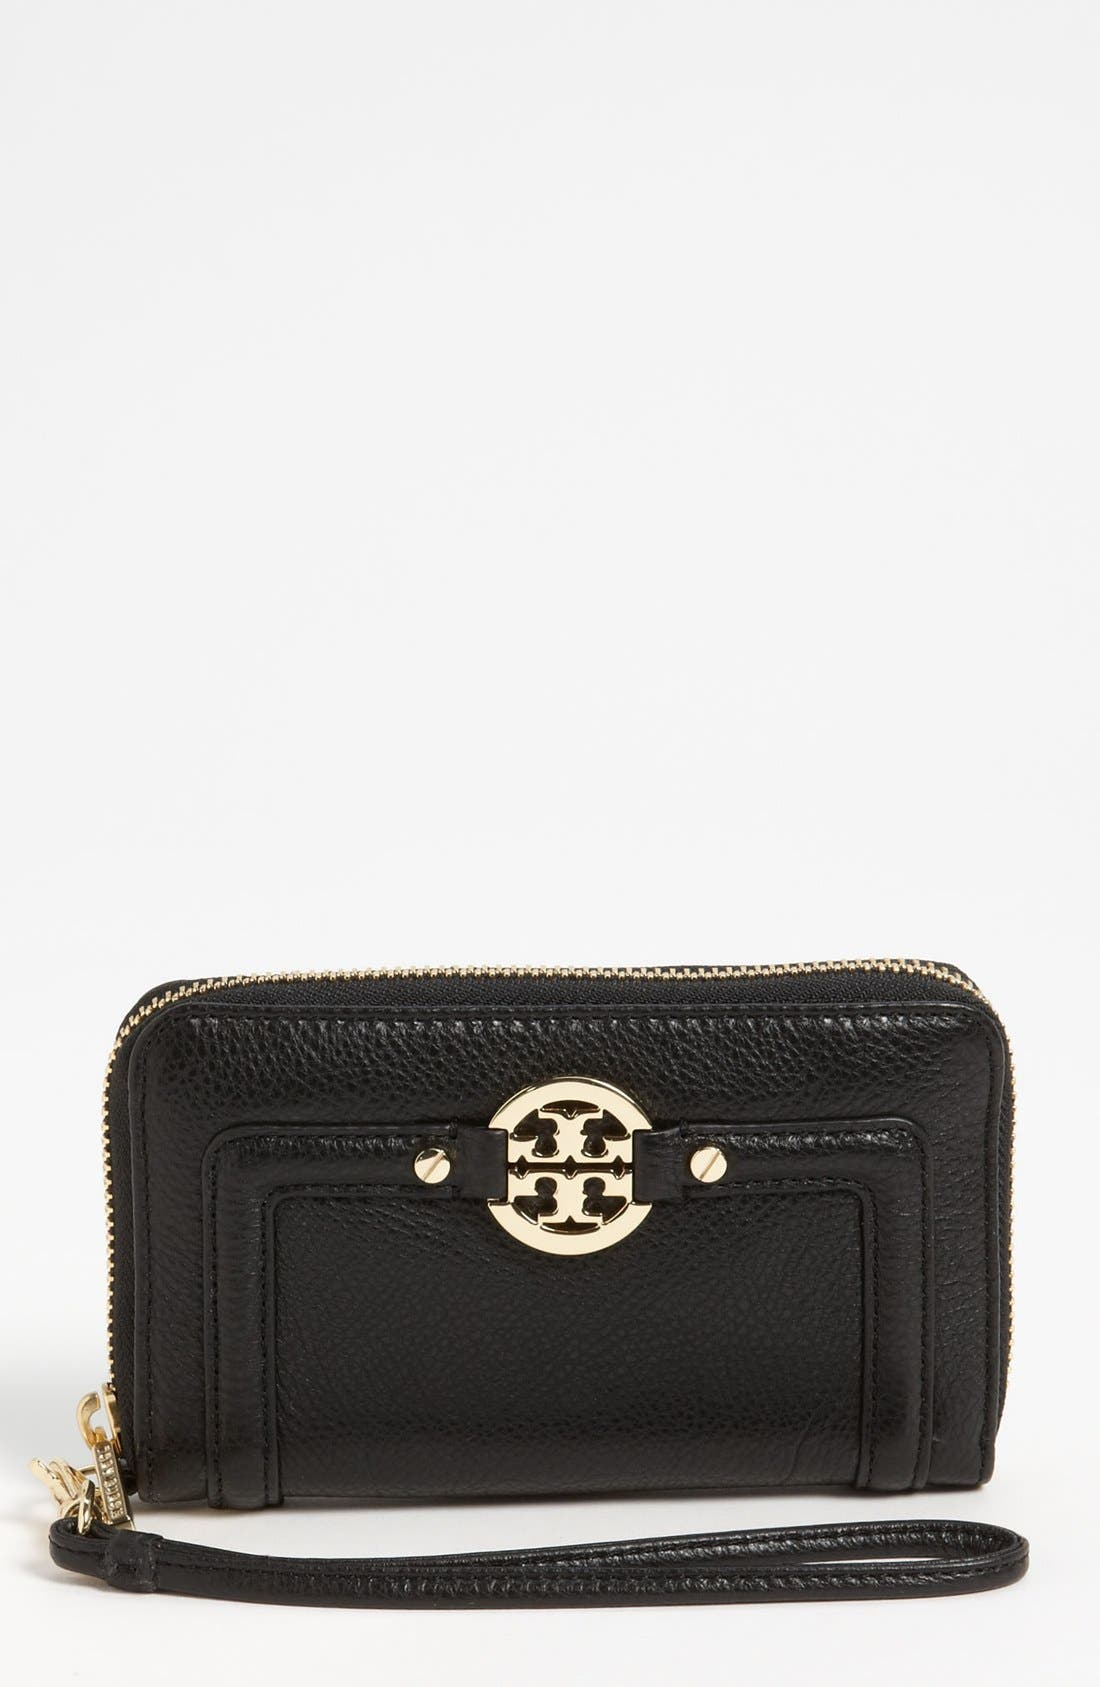 Alternate Image 1 Selected - Tory Burch 'Amanda' Smartphone Wristlet